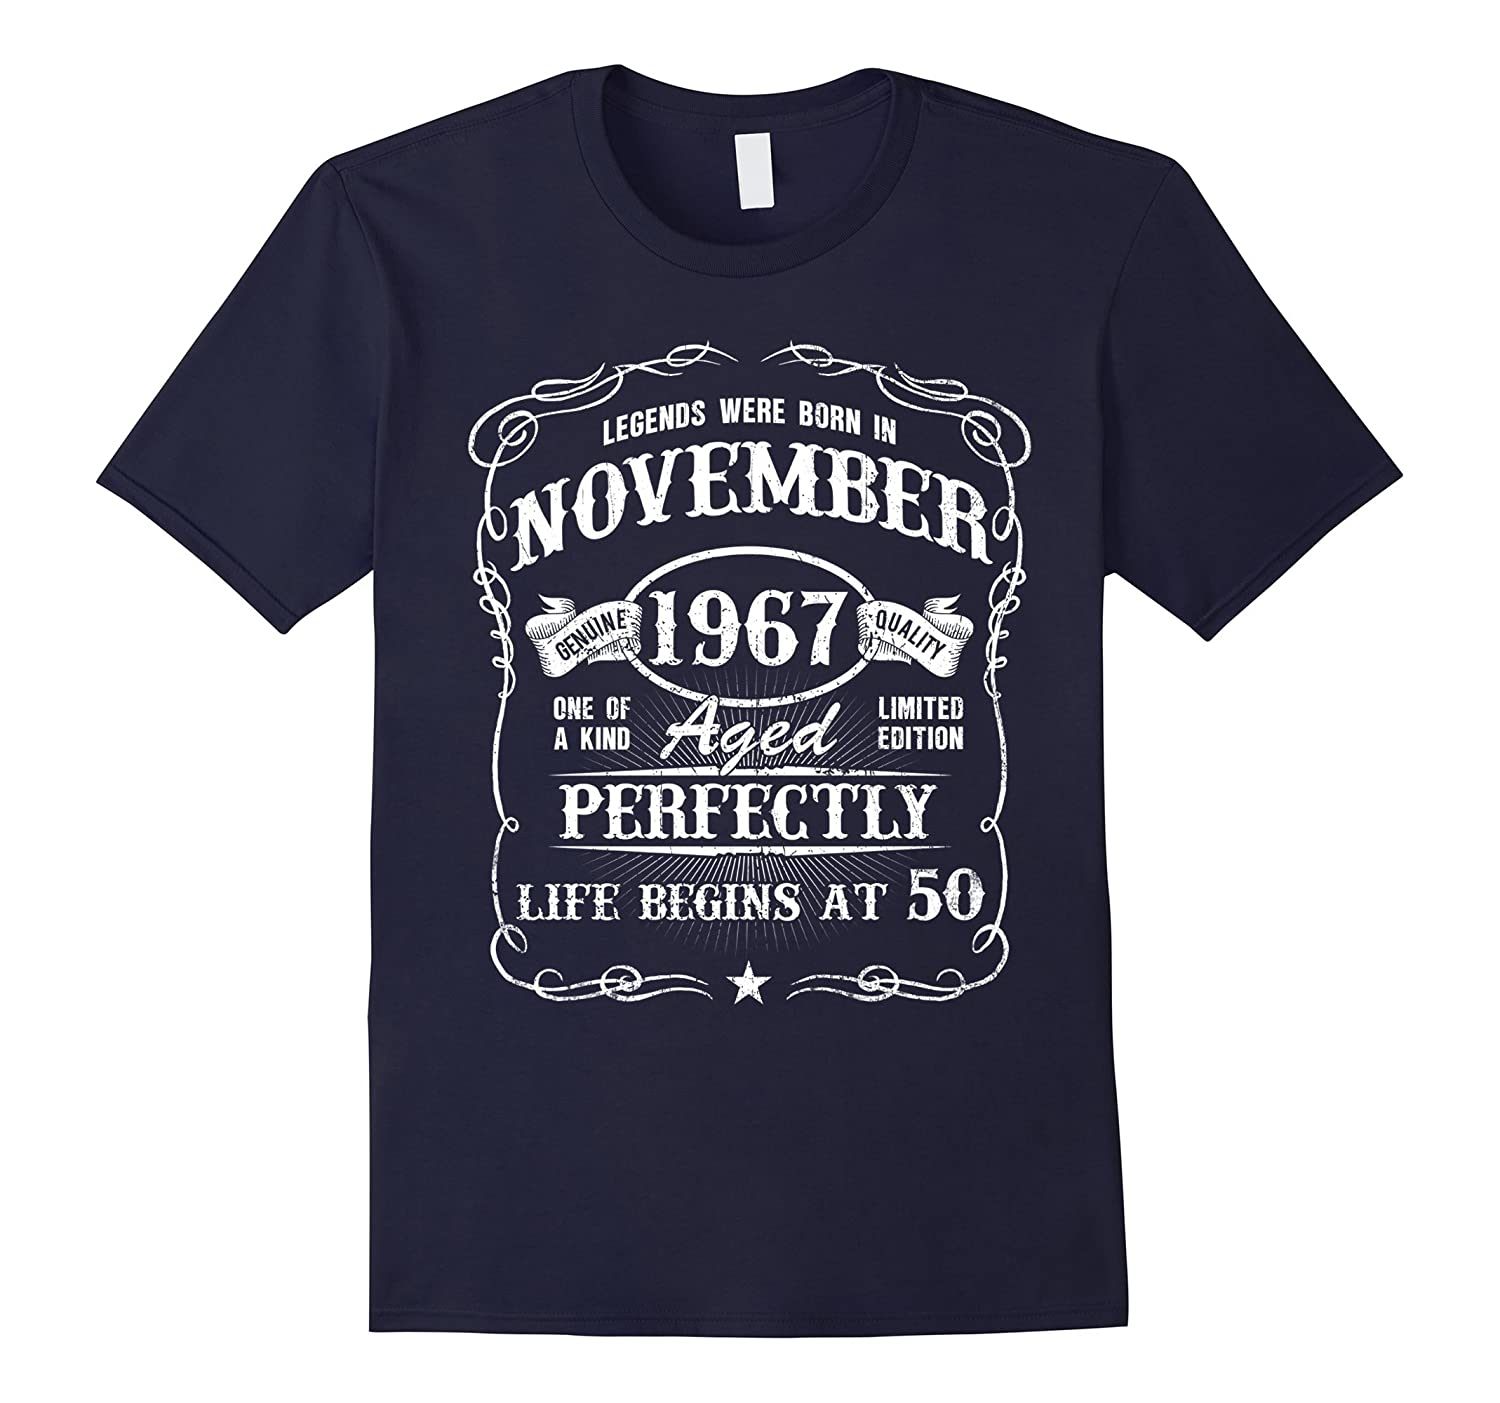 Born in November 1967 - Legends were Born in November TShirt-T-Shirt